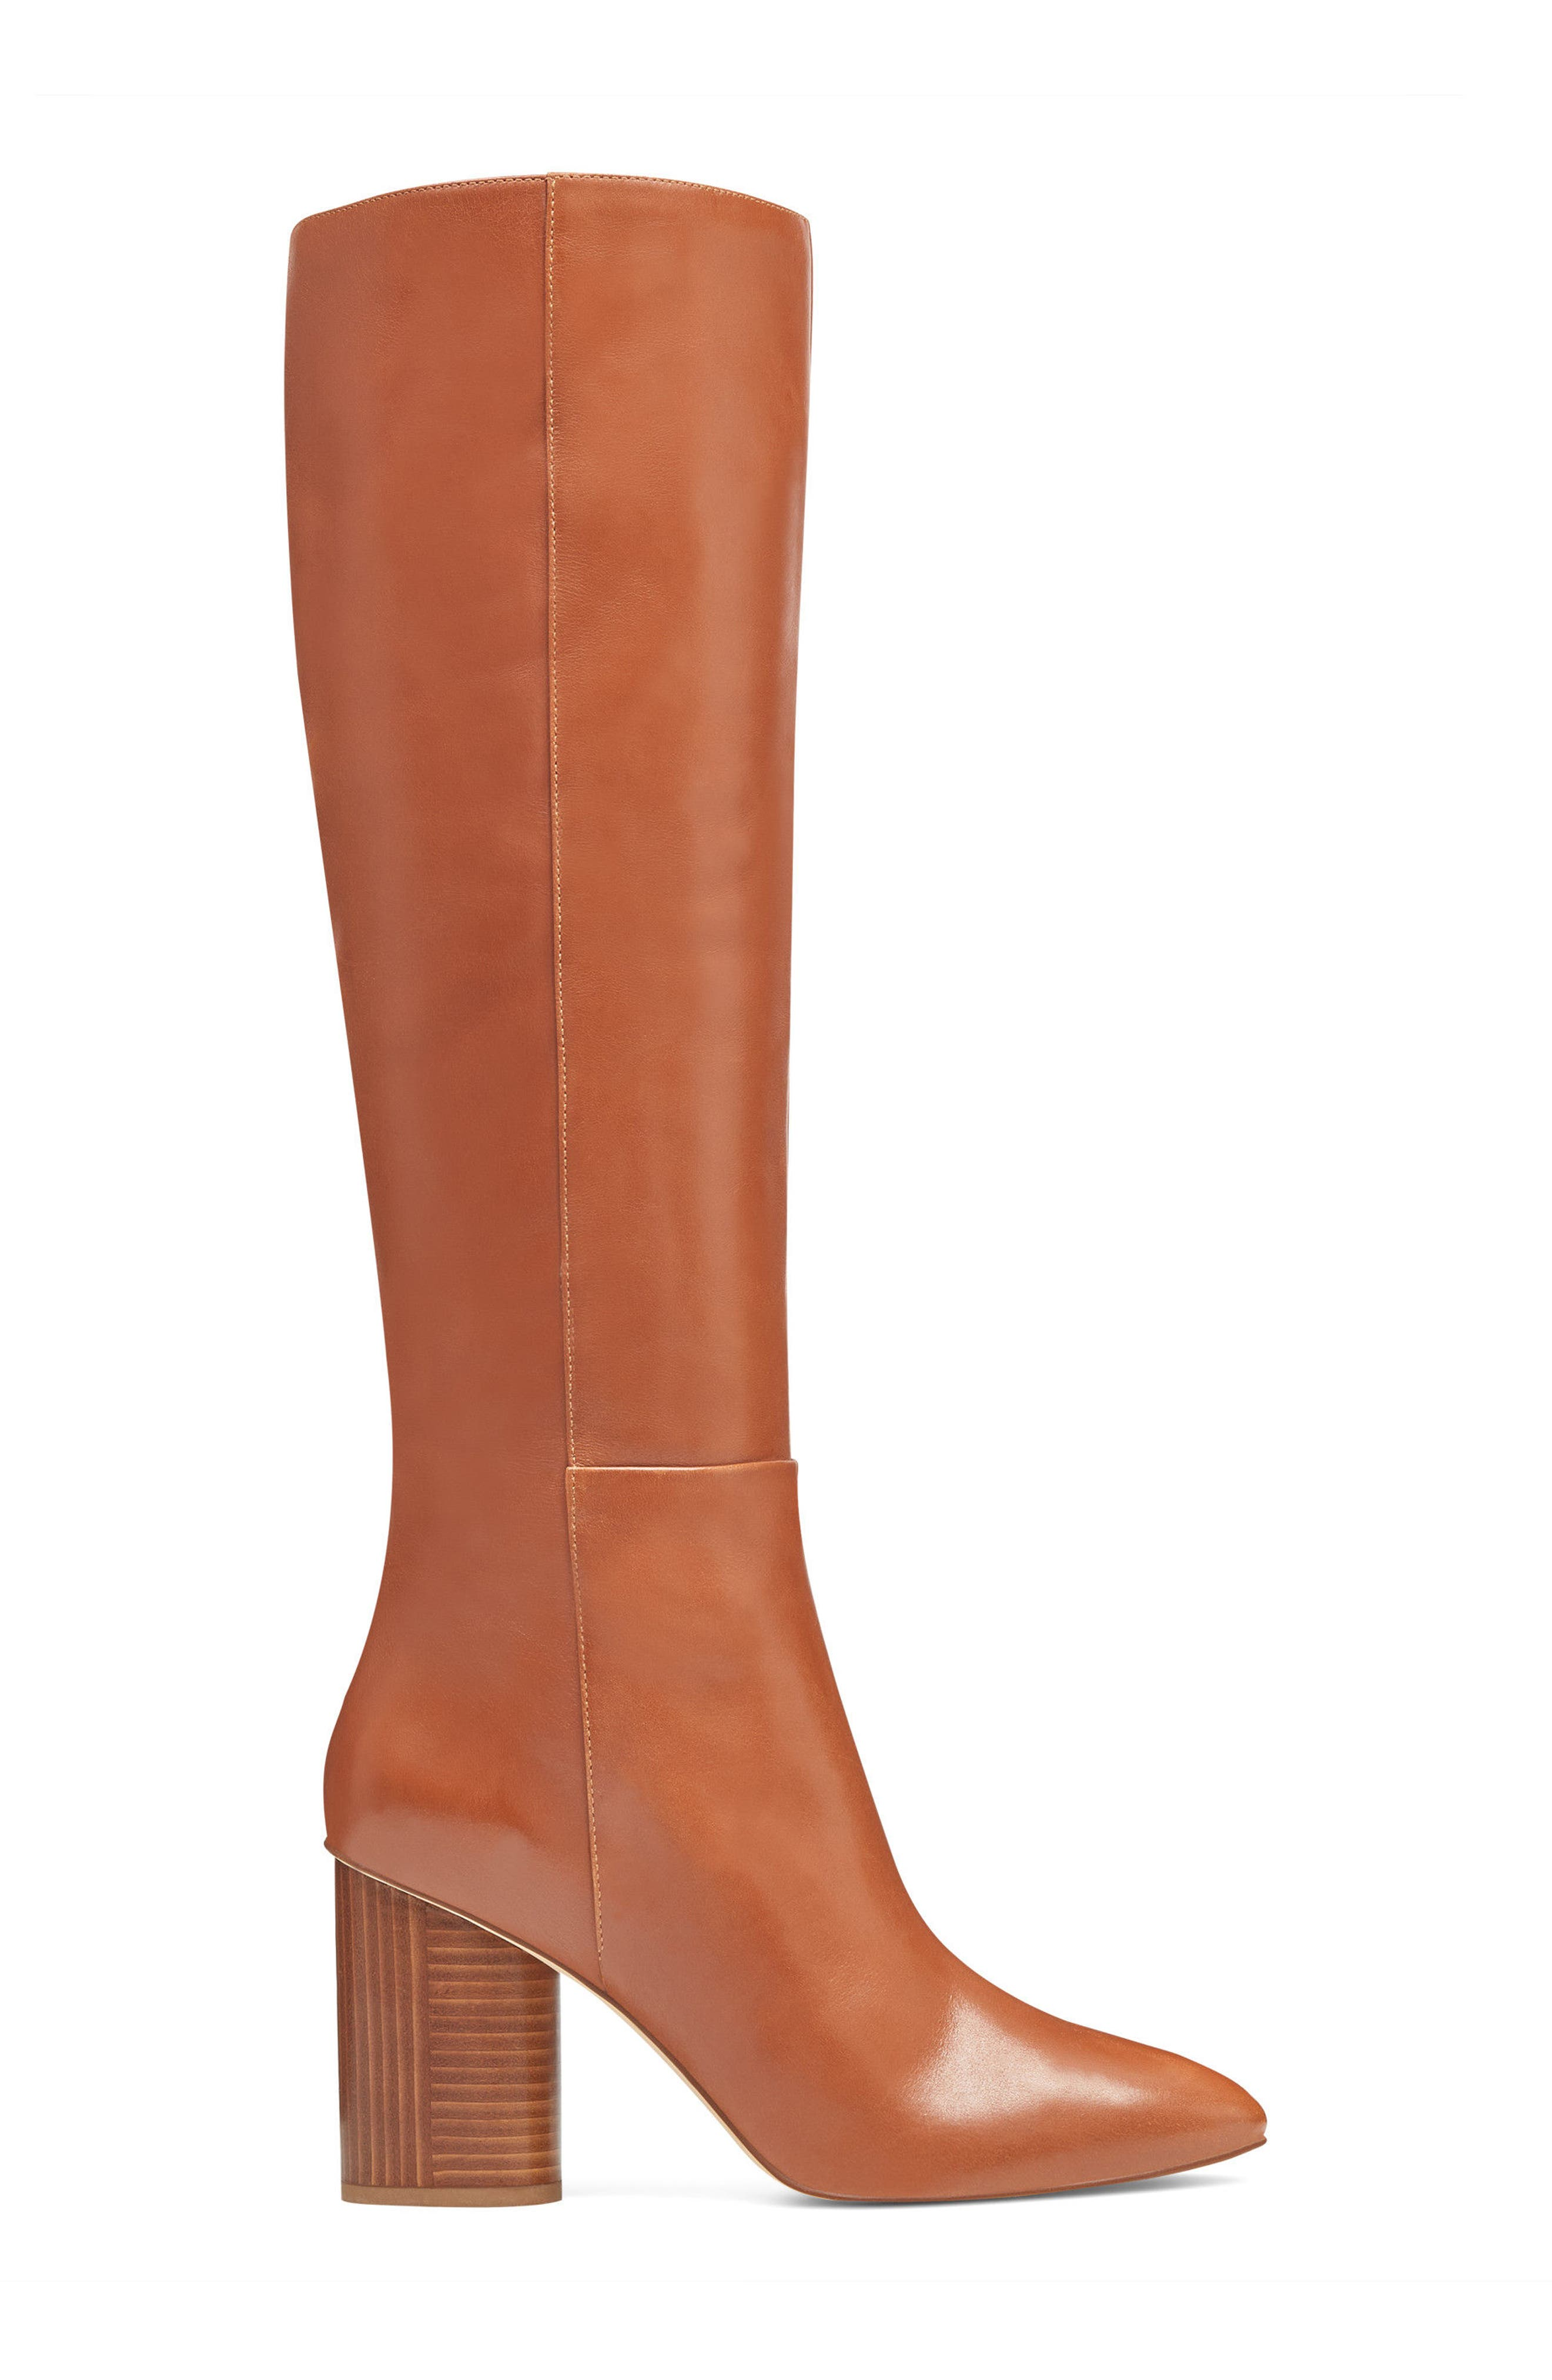 Christie Knee High Boot,                             Alternate thumbnail 6, color,